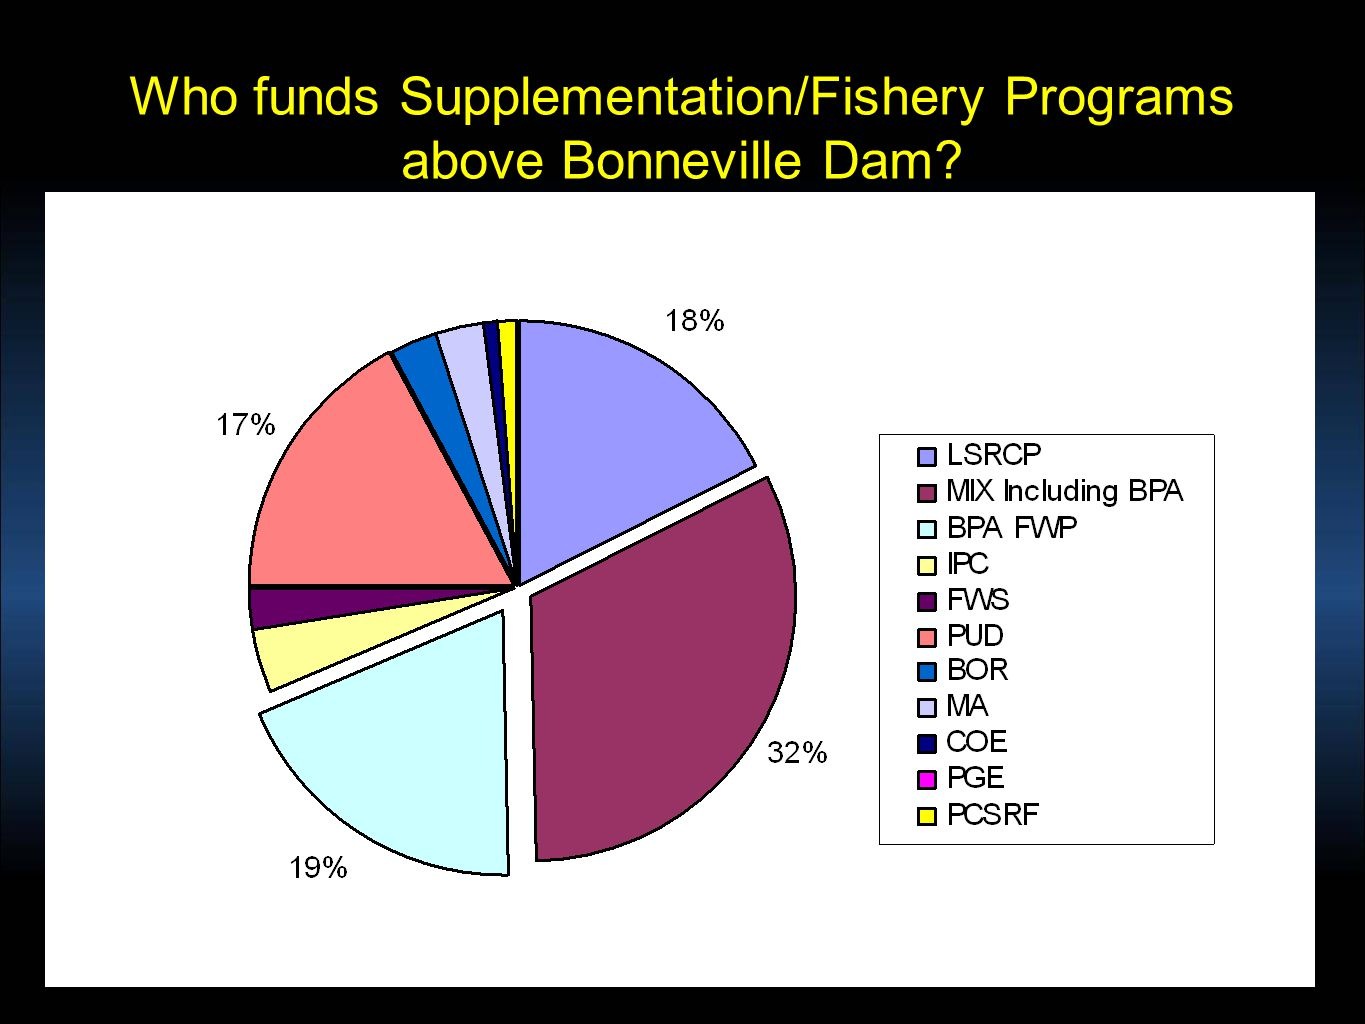 Who funds Supplementation/Fishery Programs above Bonneville Dam